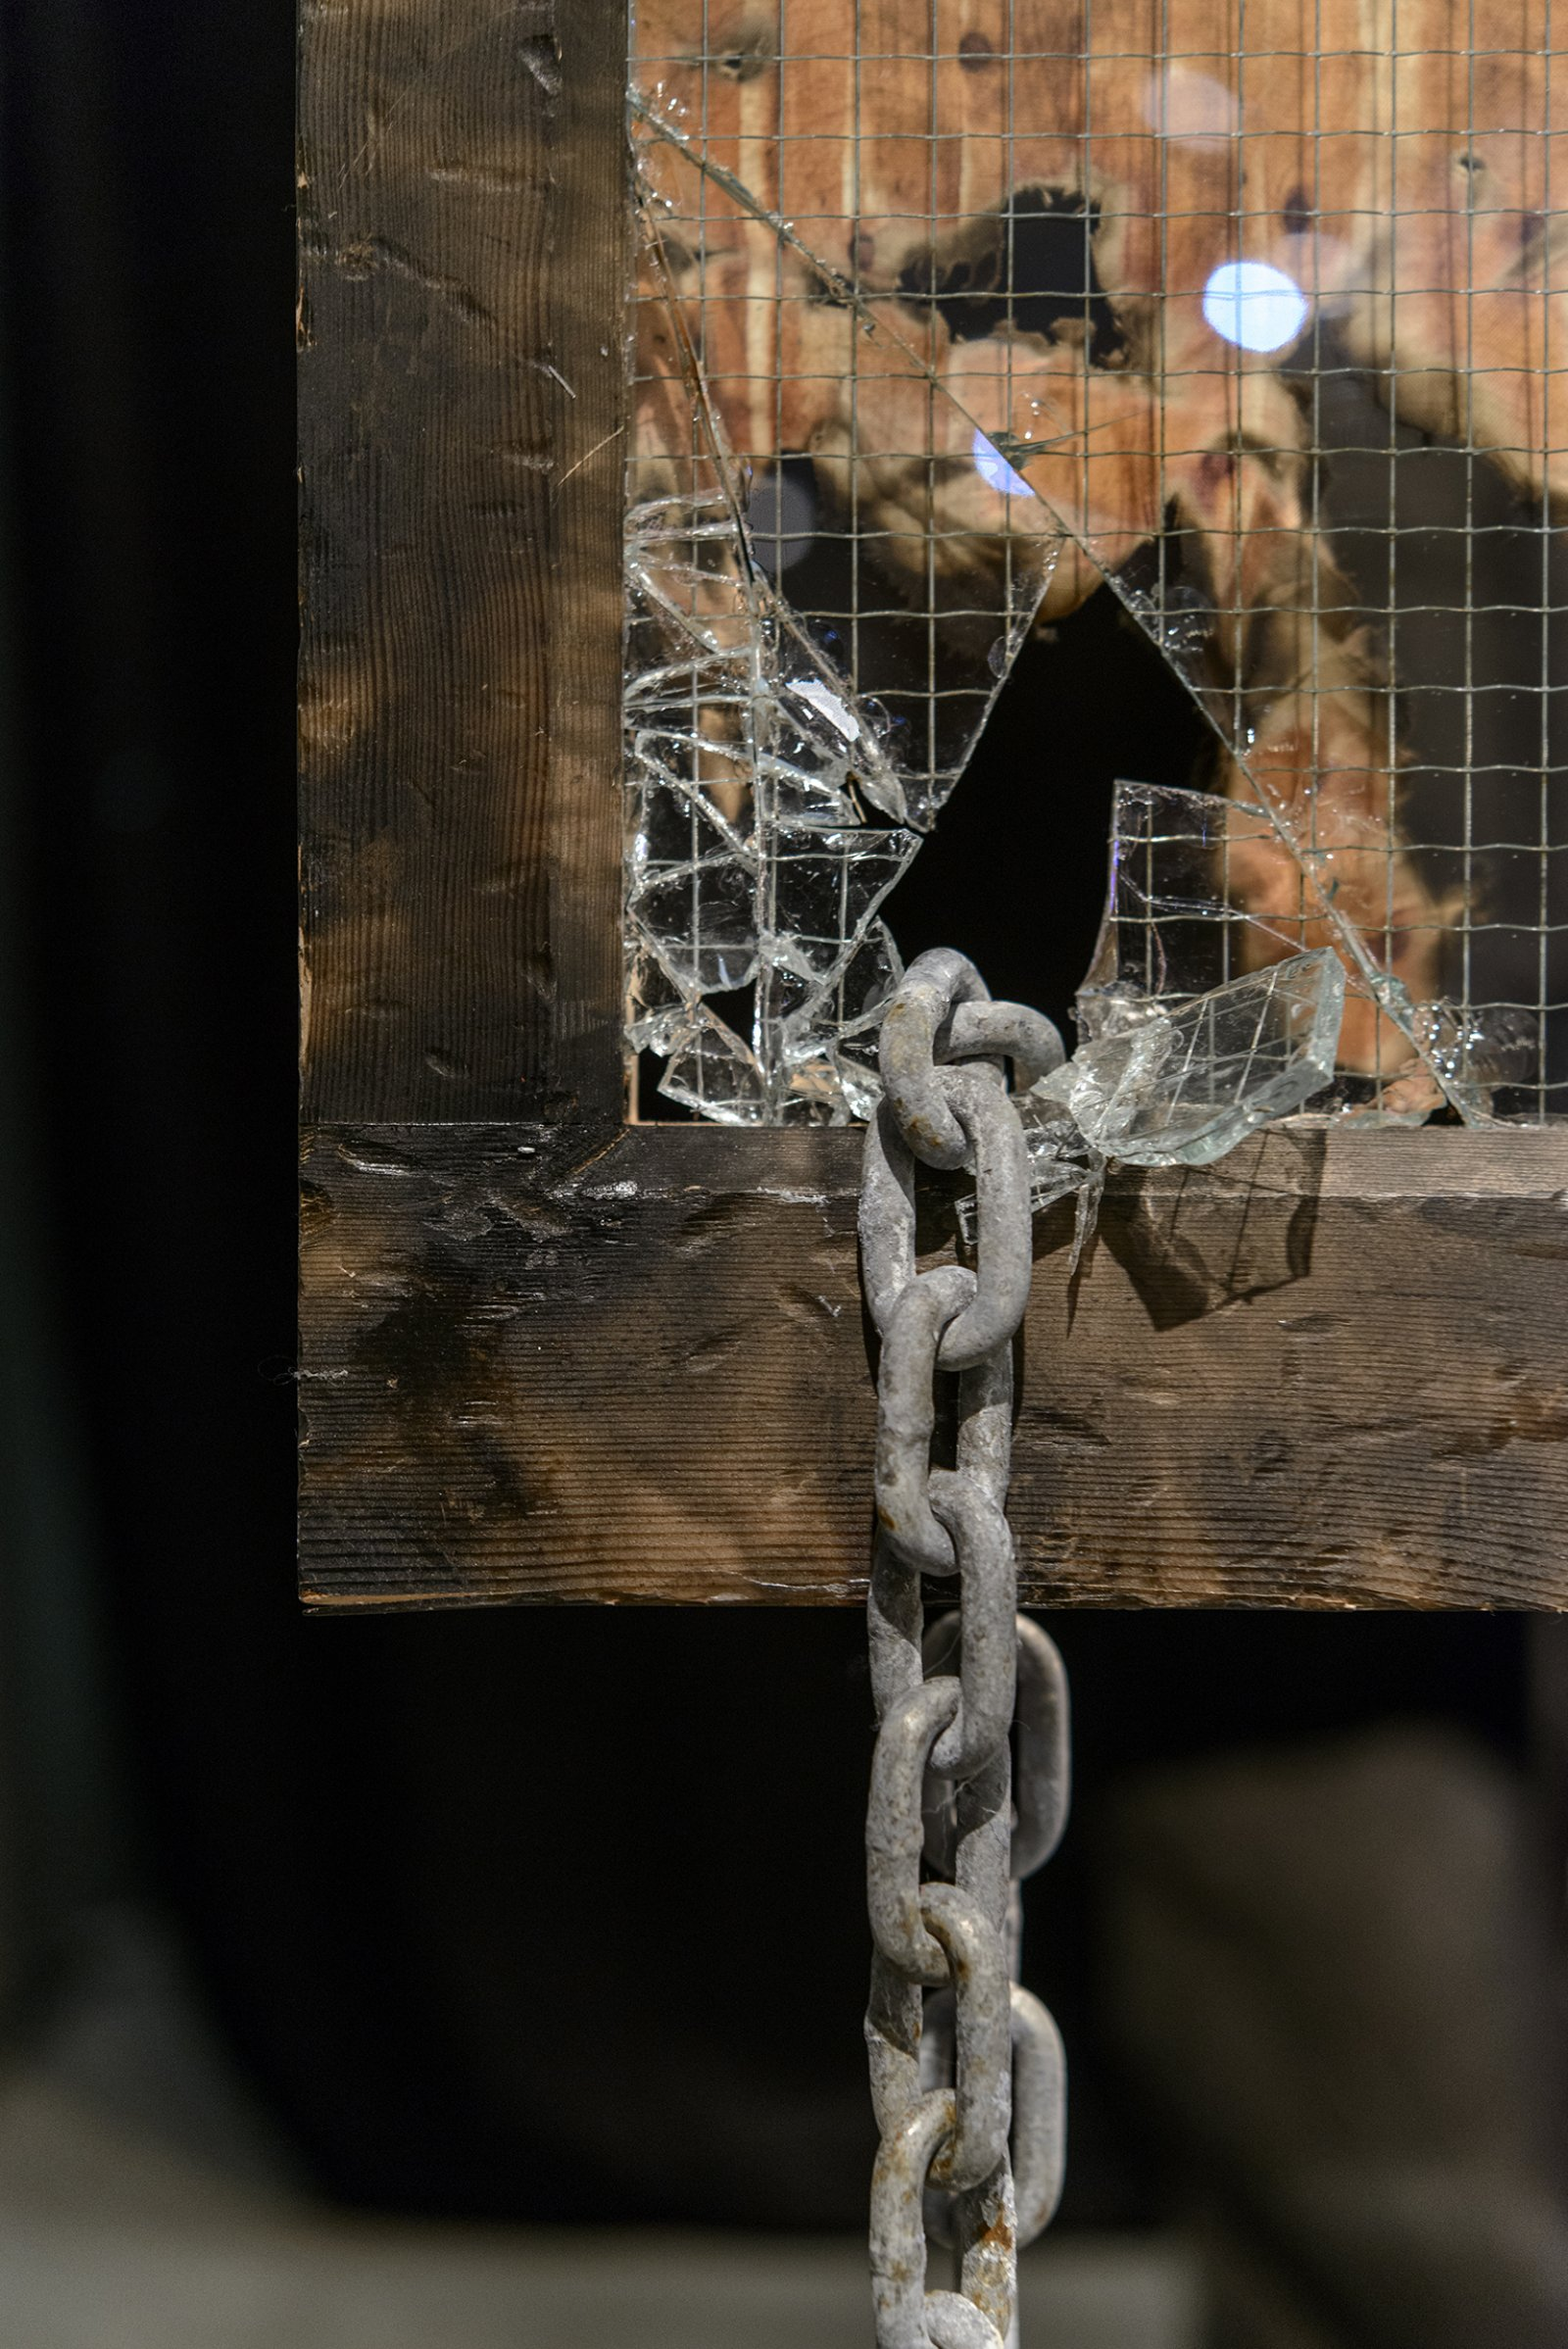 Julia Feyrer,Chained/Charred, 2013, burnt fabric, corroded chain, security glass, hand painted sign, charcoaled wood frame, dimensions variable. Installation view,The Intellection of Lady Spider House, Art Gallery of Alberta, 2013.